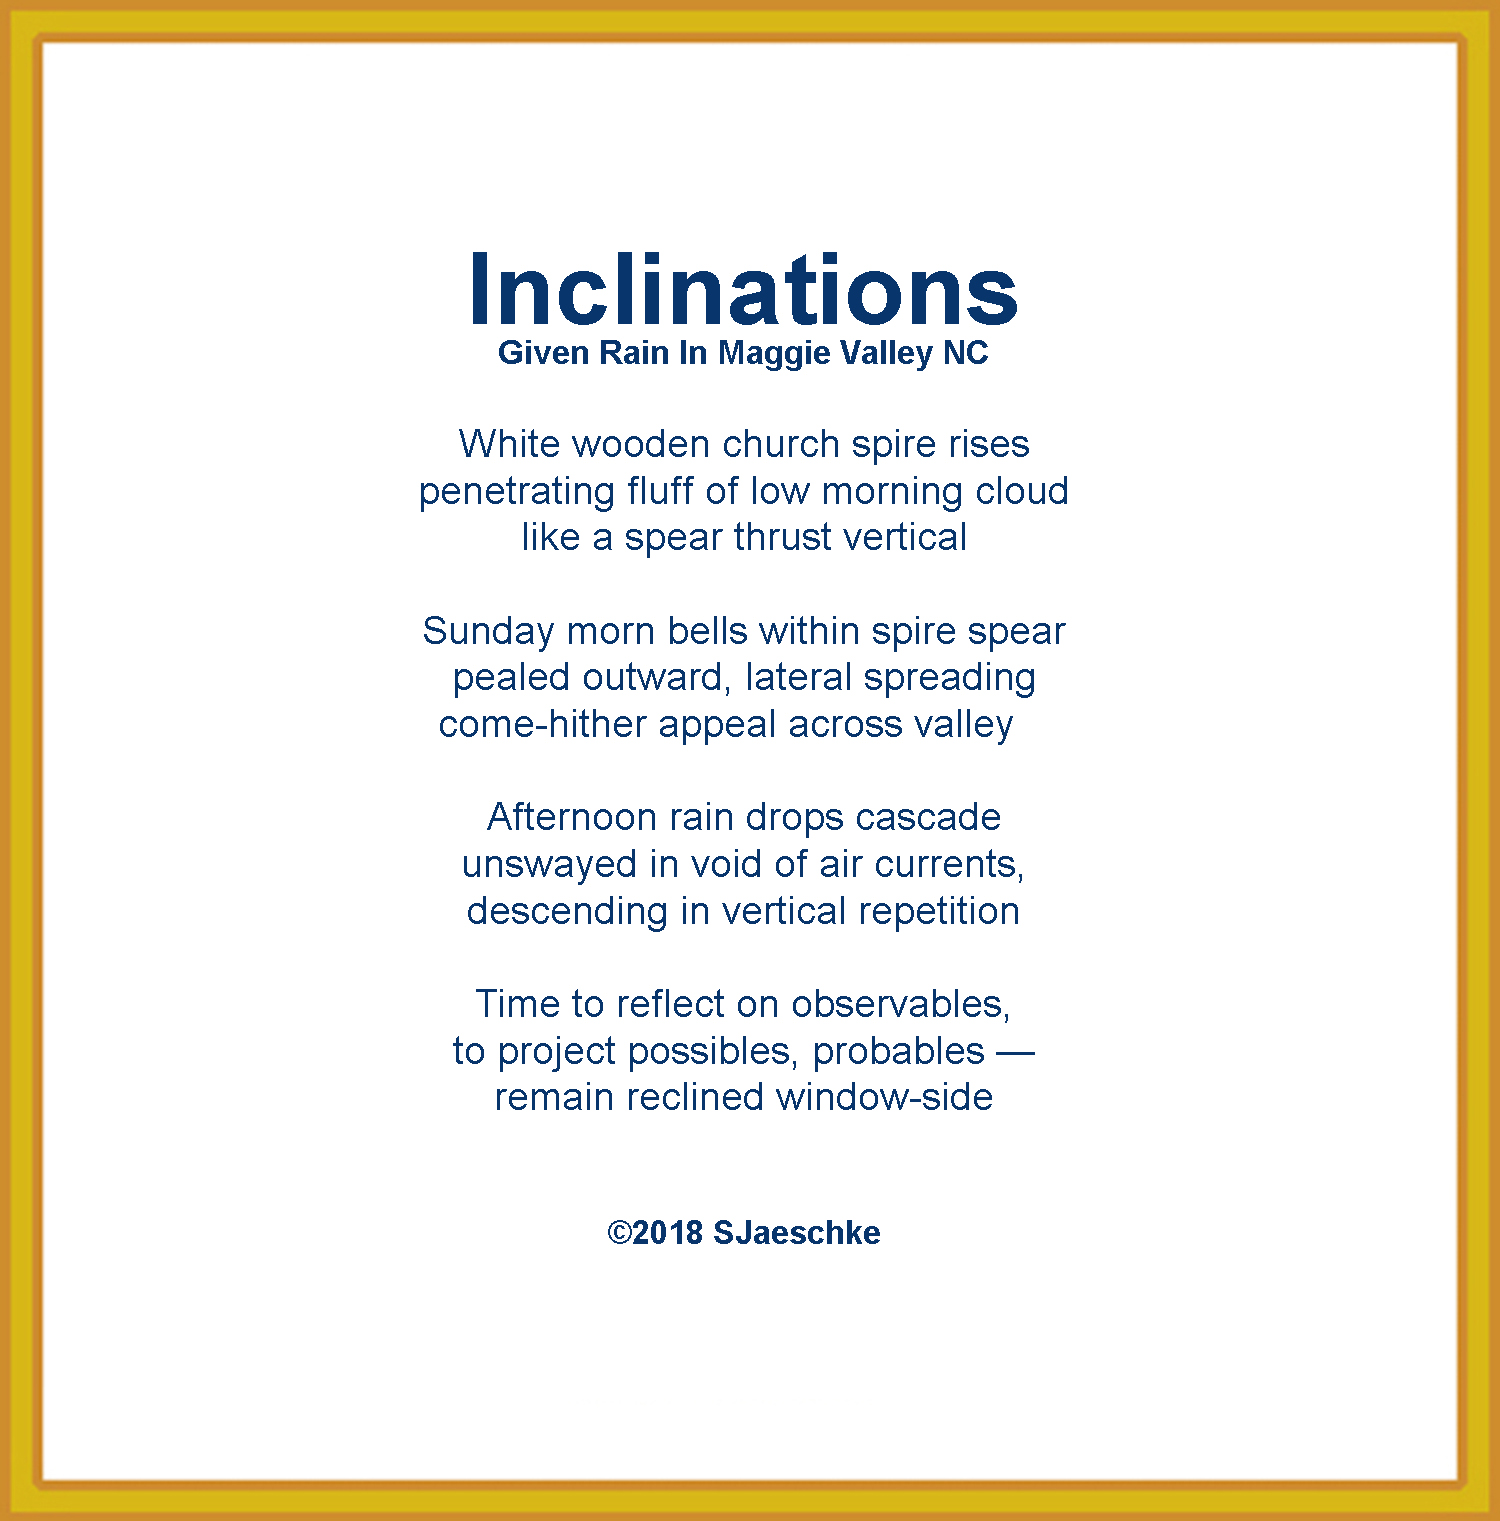 Post_2018-06-30_Poem_Inclinations